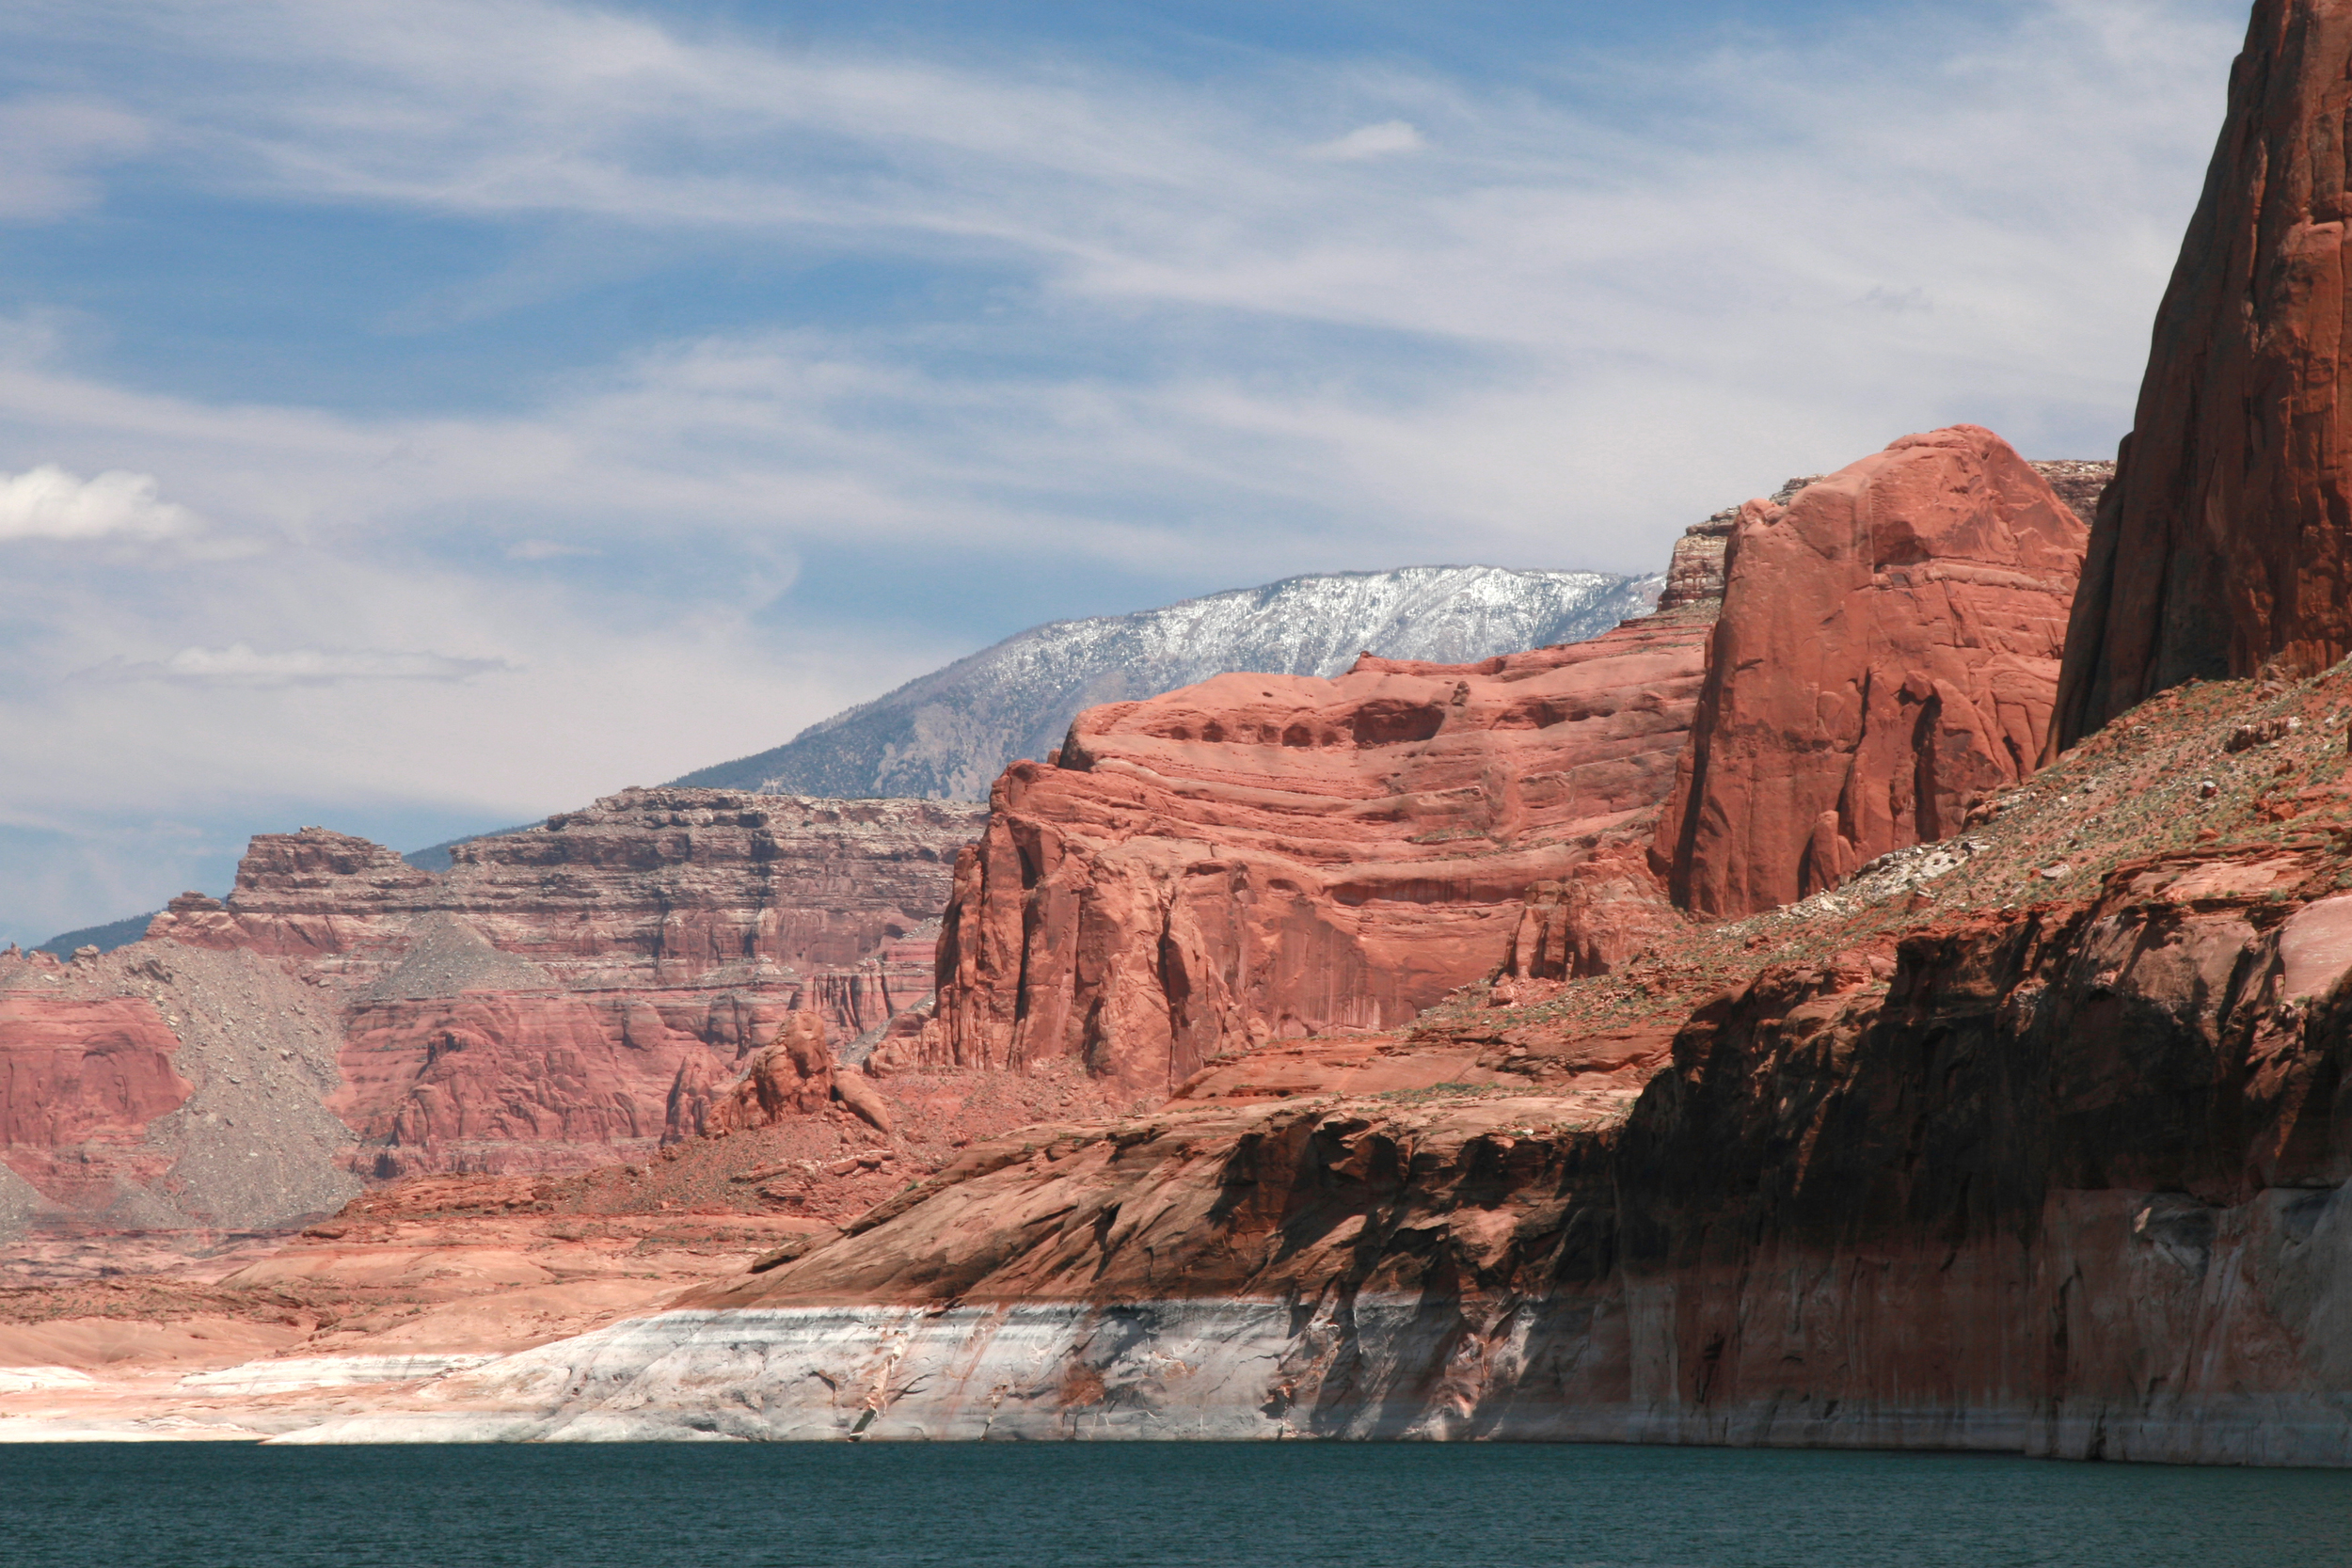 Bathtub ring on Lake Powell—the second largest man-made reservoir by maximum water capacity in the United States